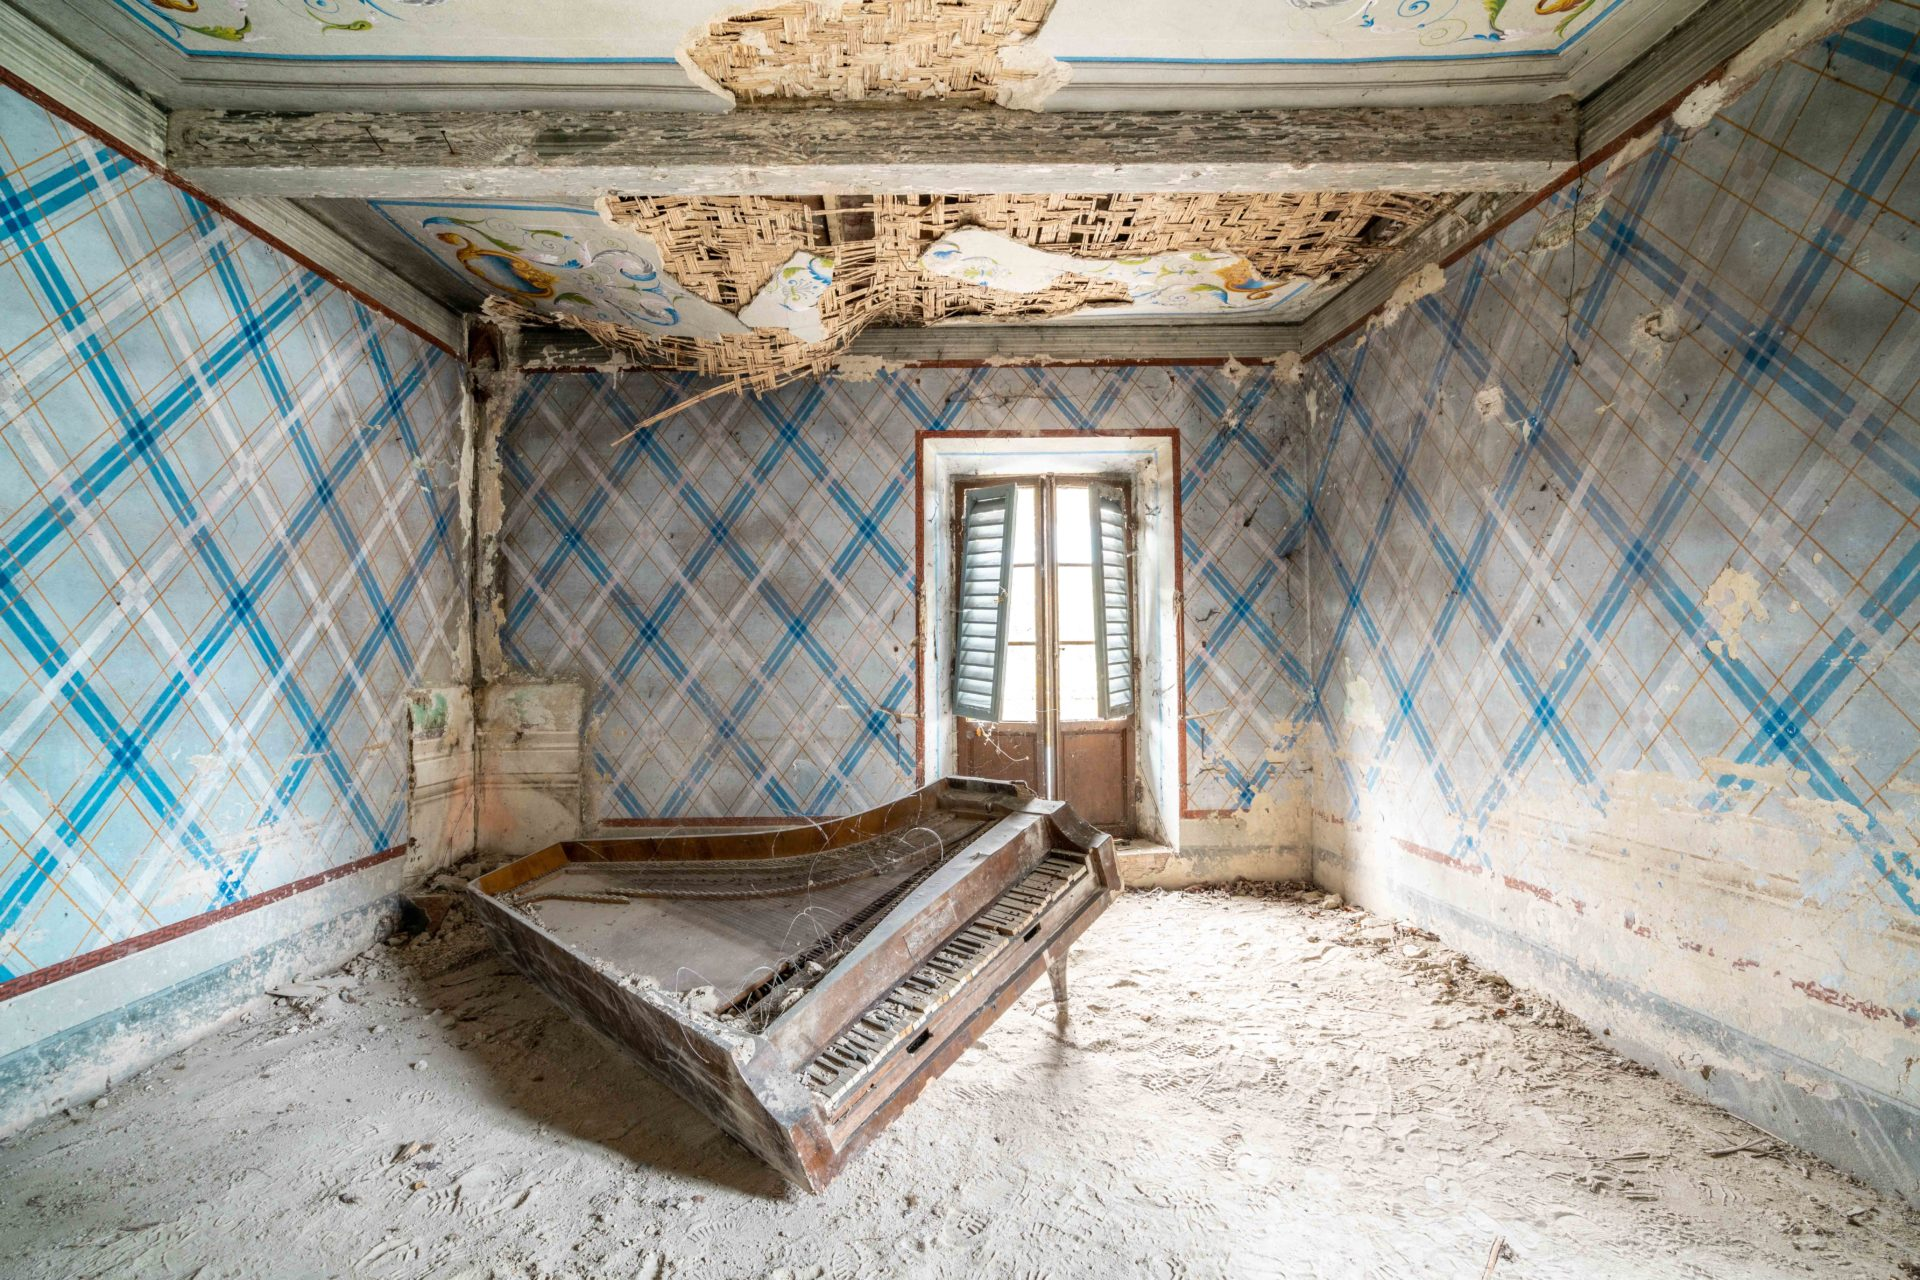 abandoned piano in Italy, Romain Thiery photographer, requiem pour pianos series